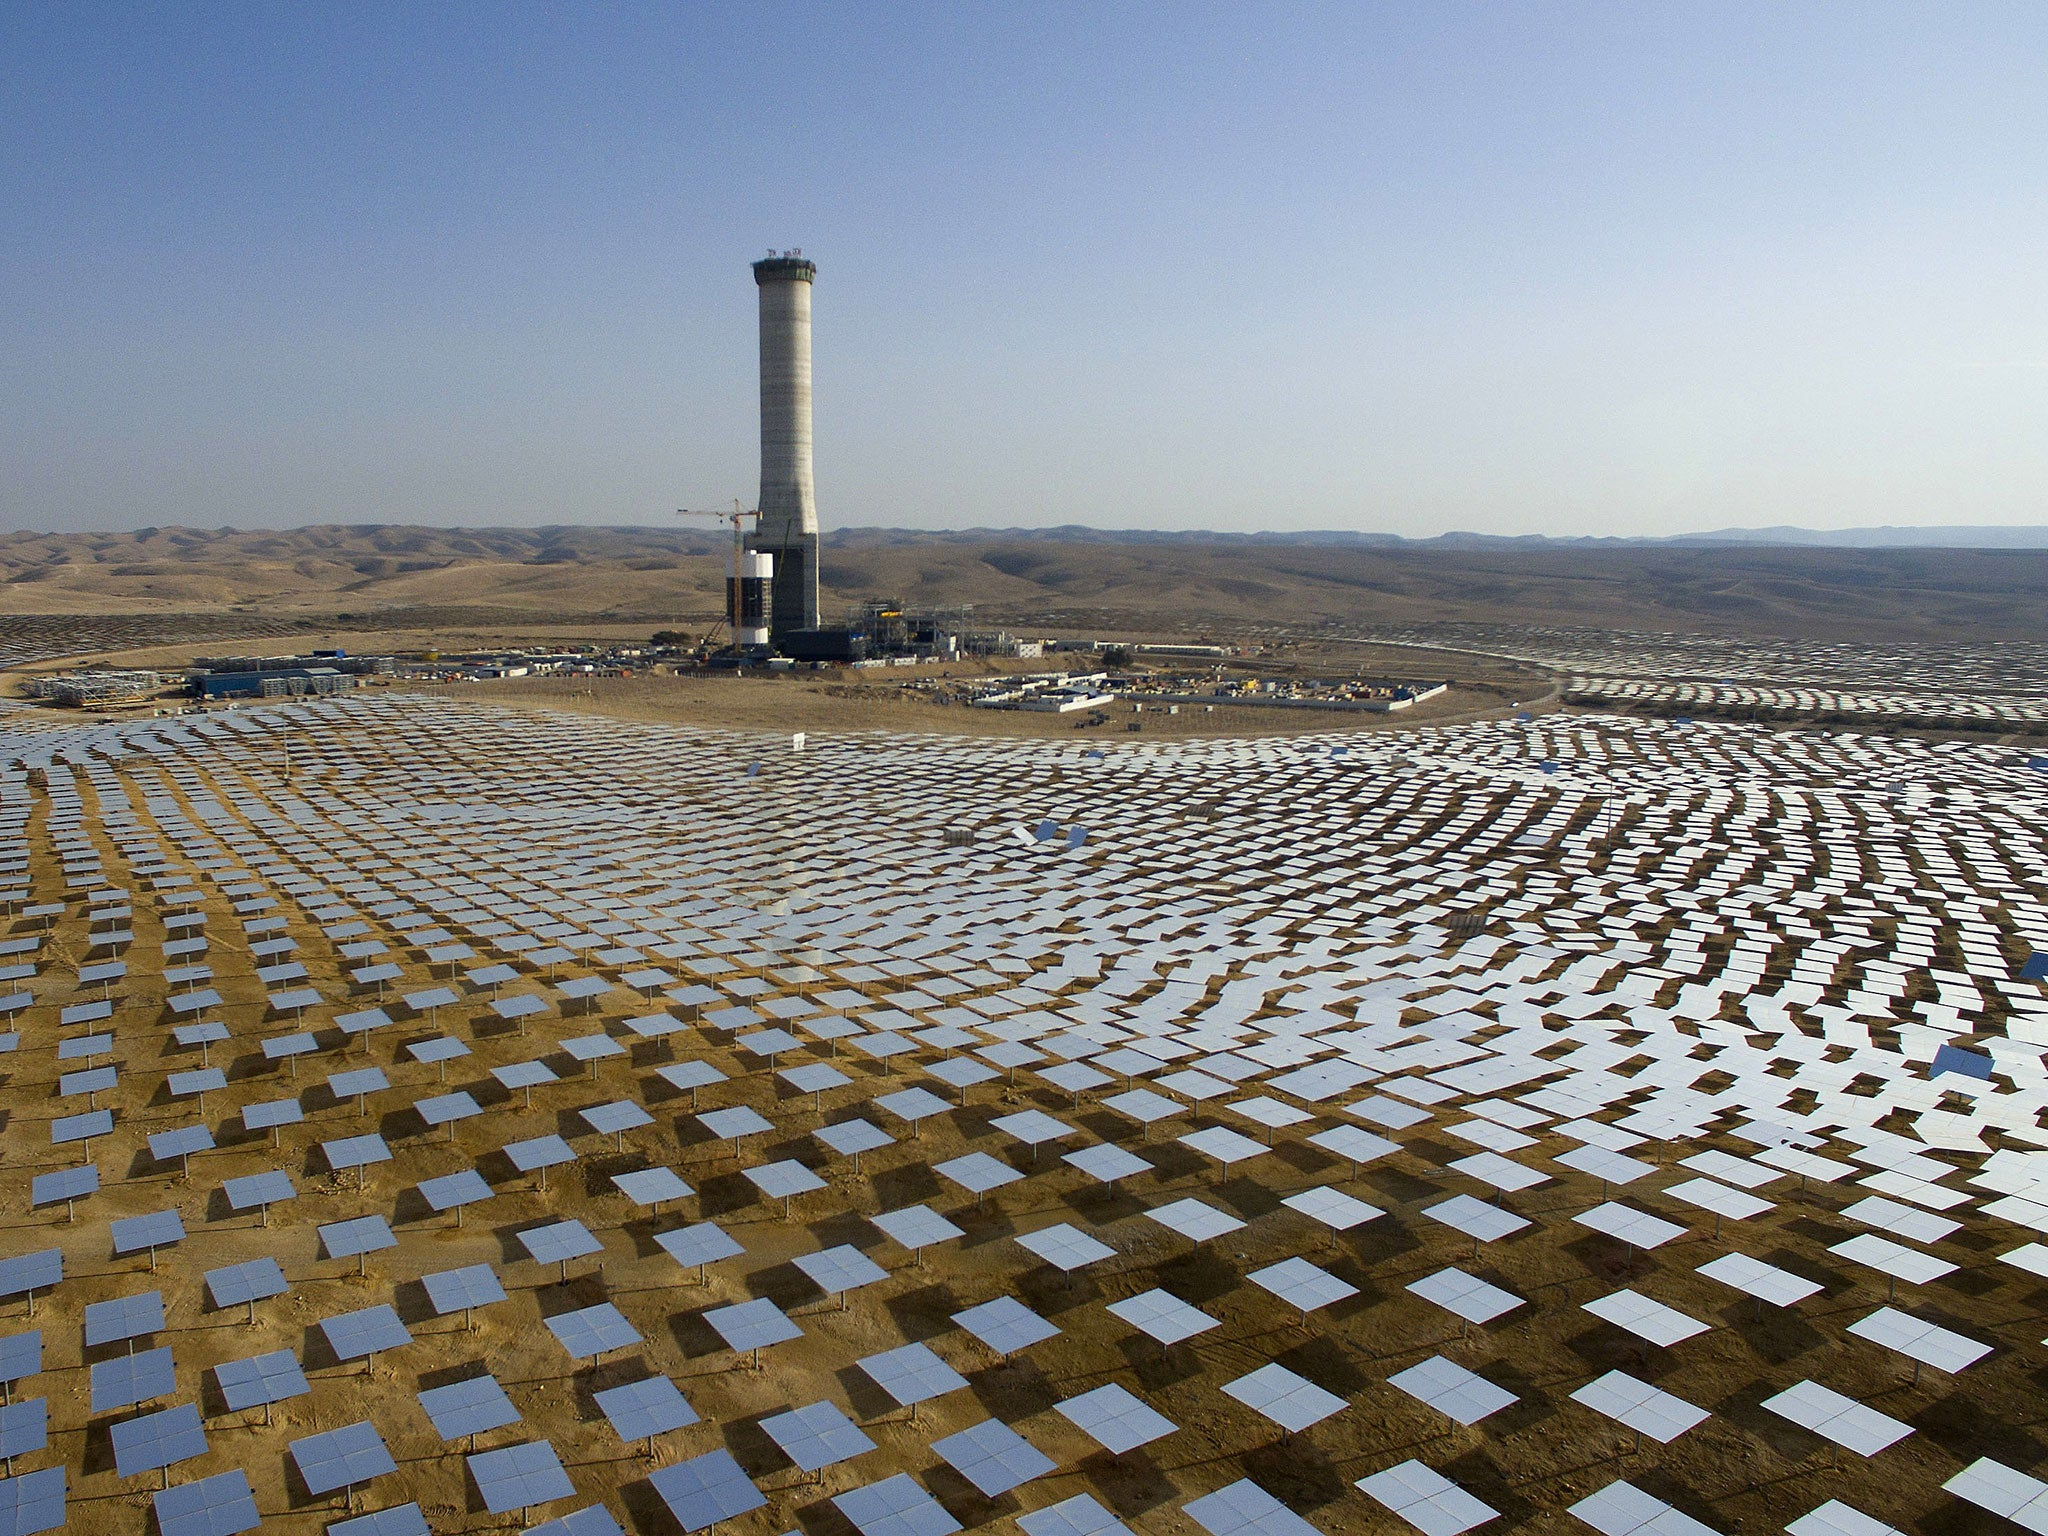 Israel to build world s tallest solar tower in symbol of renewable